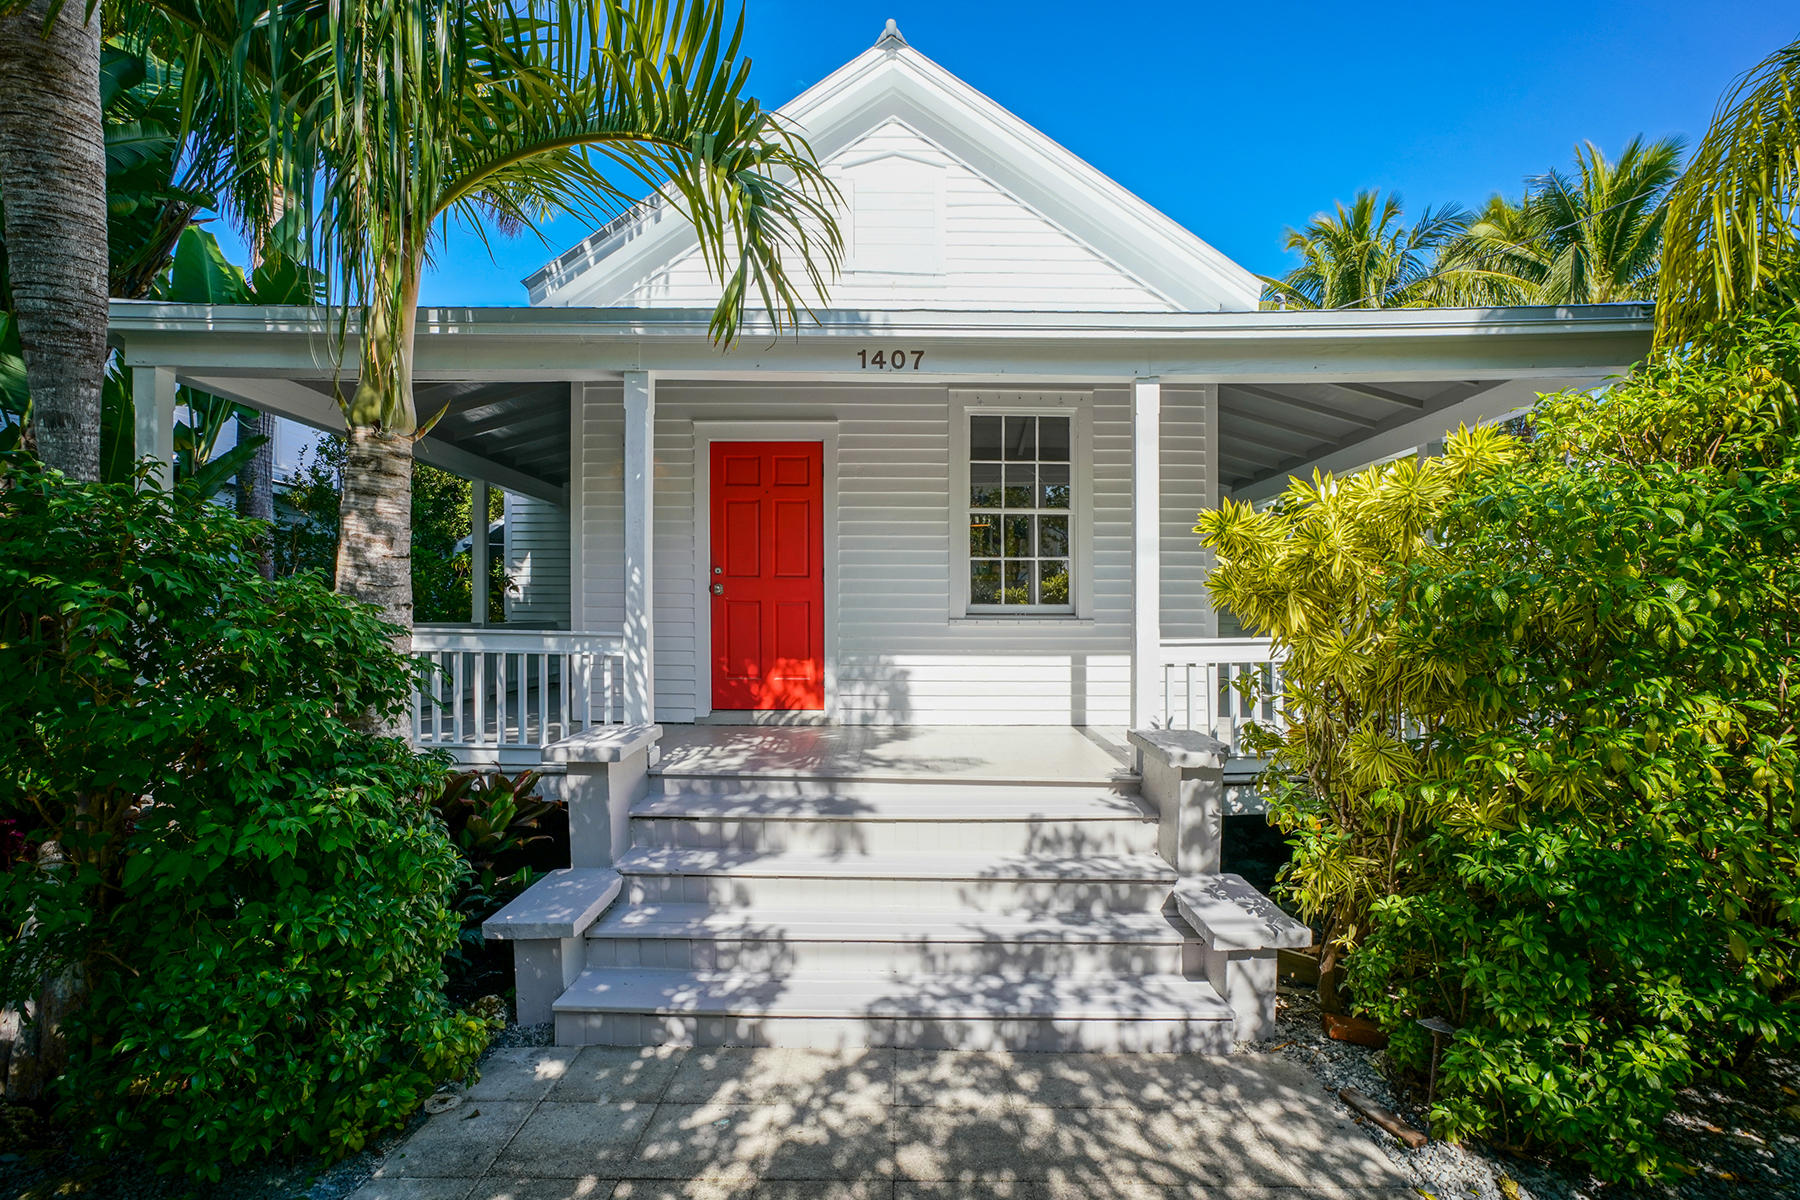 Single Family Homes for Sale at 1407 Petronia Street, Key West, FL 1407 Petronia Street Key West, Florida 33040 United States